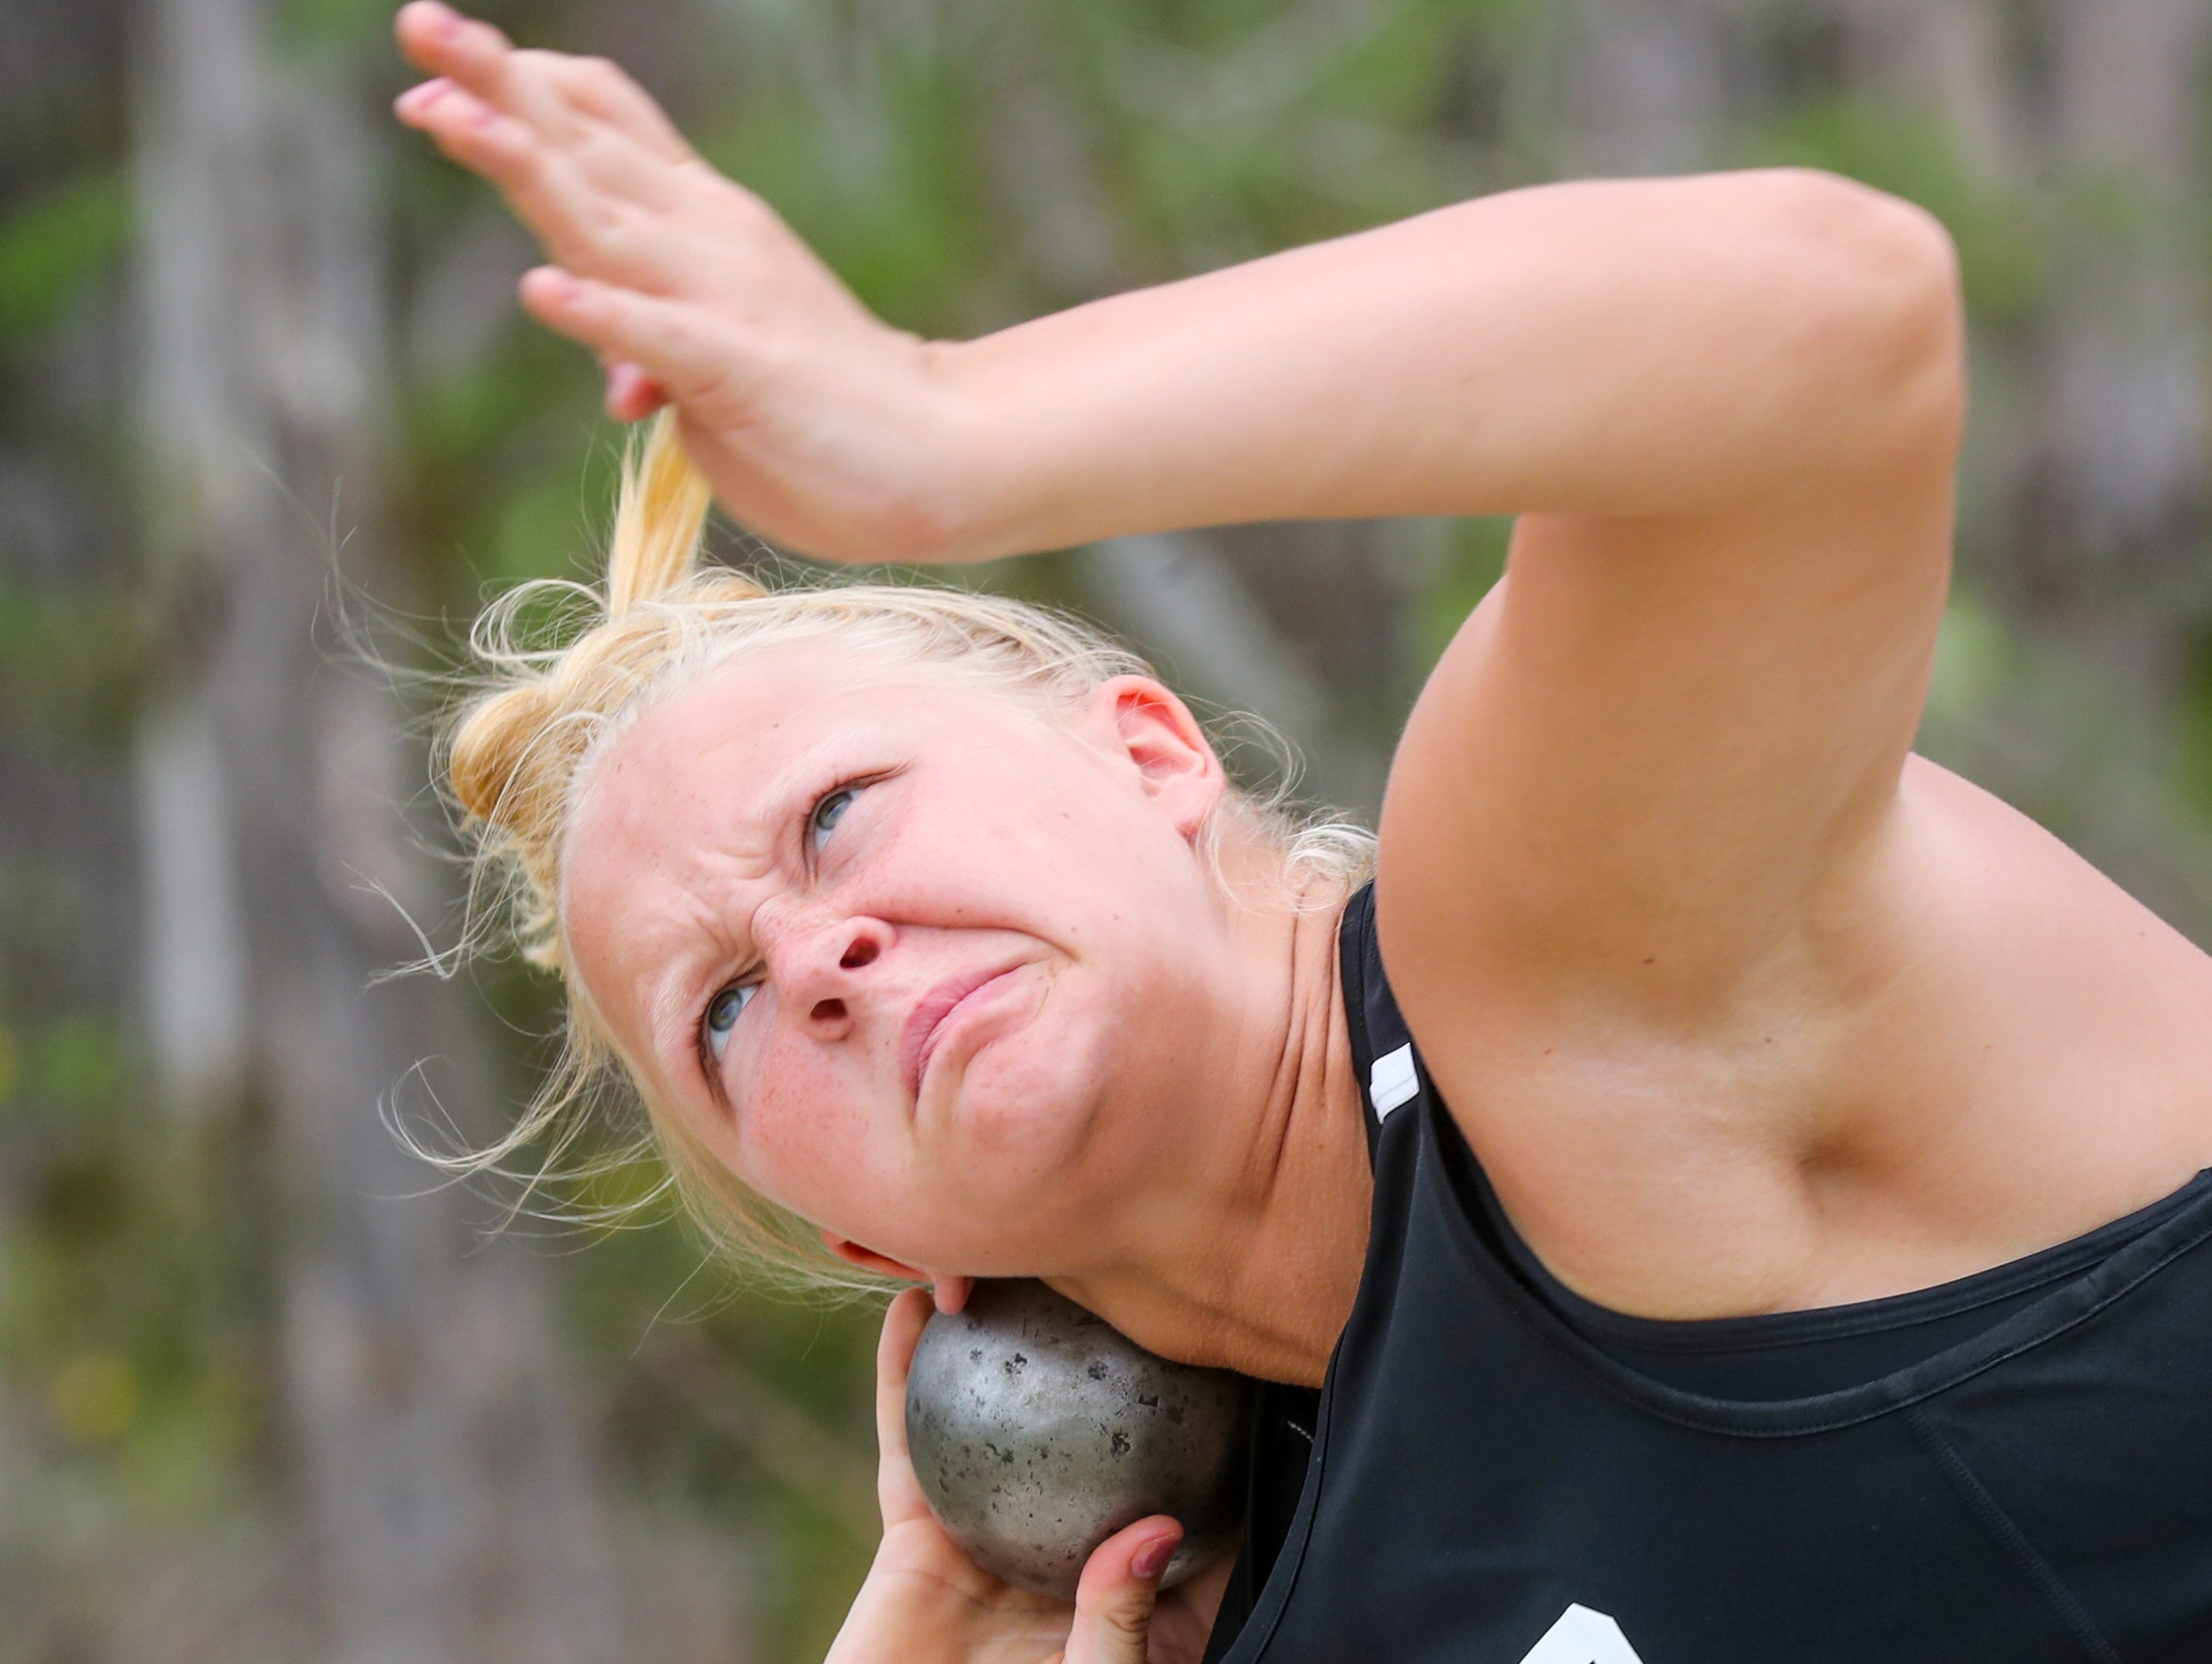 3rd place, Aubrey Schoeneman